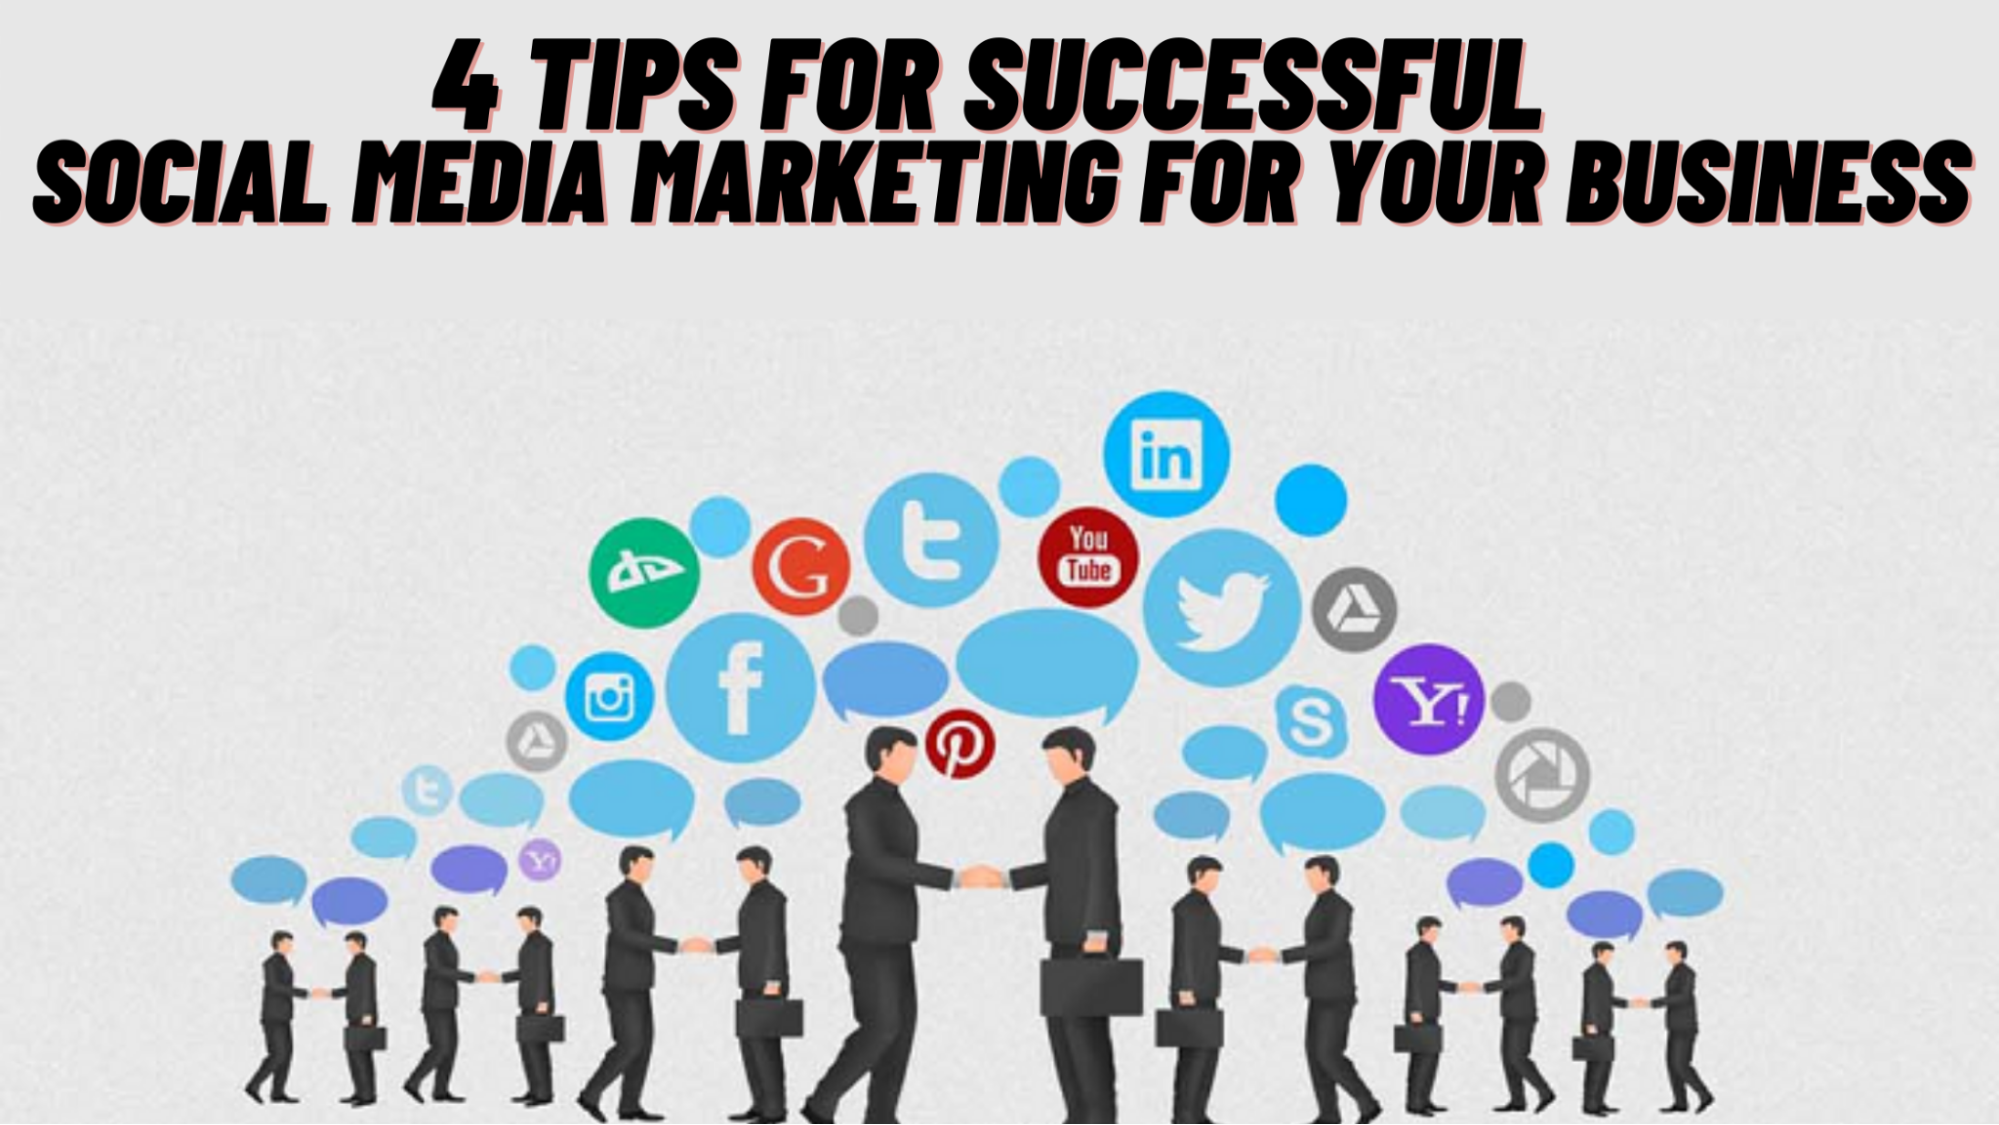 Successful Social Media Marketing For Your Business